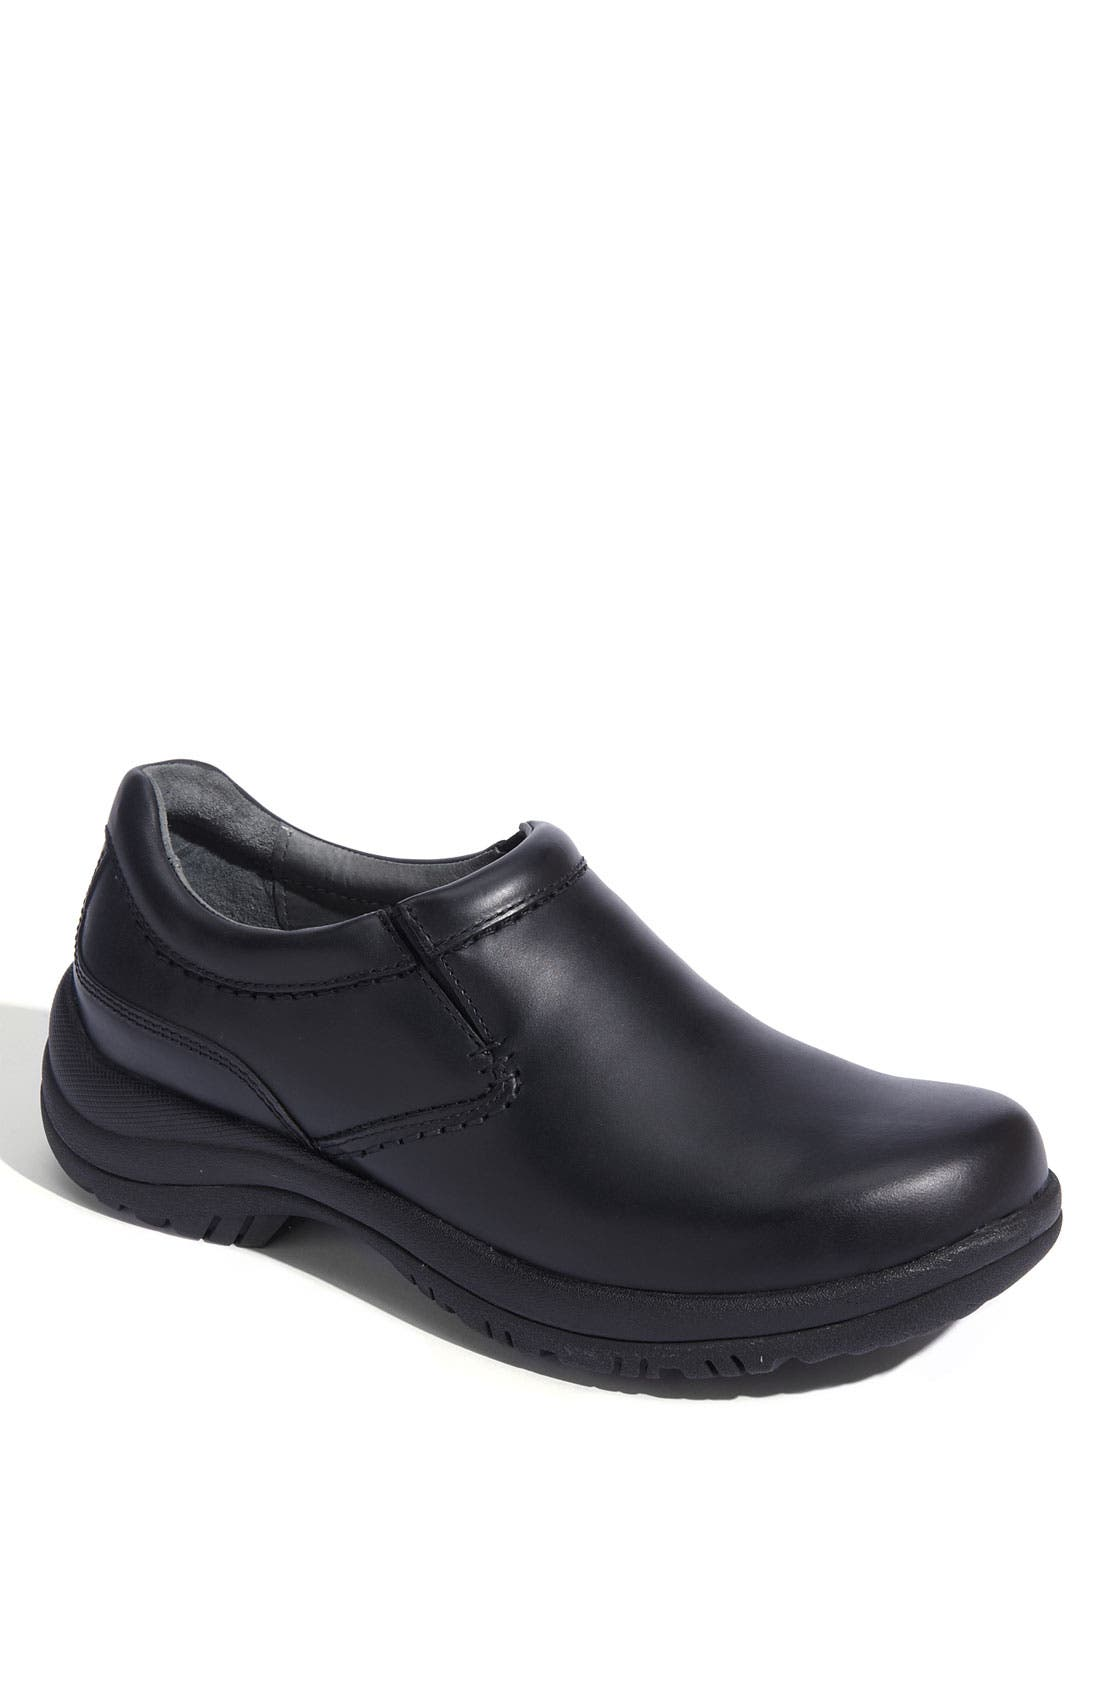 'Wynn' Slip-On,                             Main thumbnail 1, color,                             Black